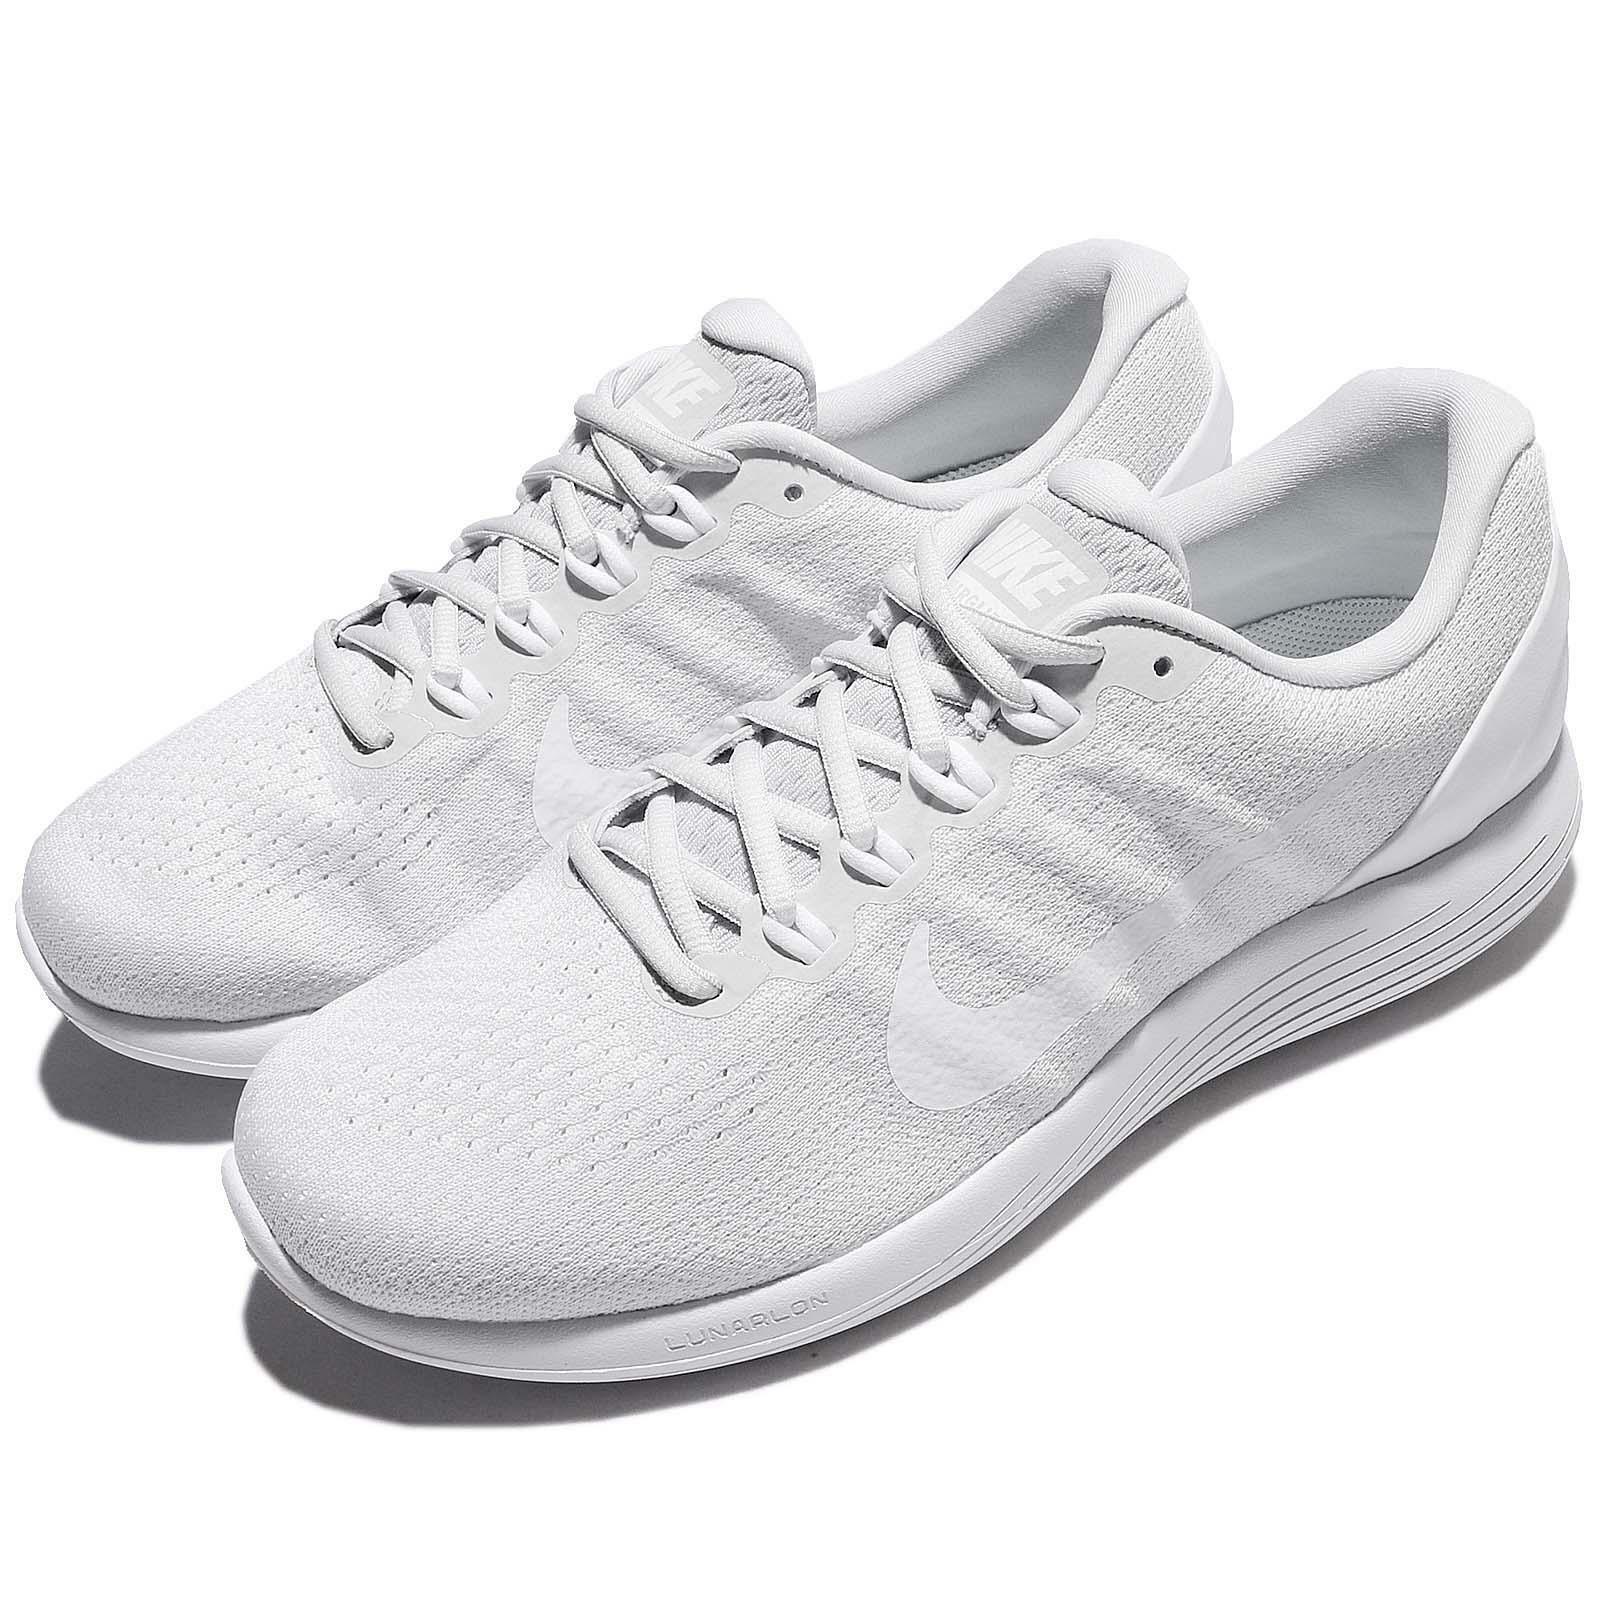 Nike Lunarglide 9 IX Platinum Blanc Men Running Chaussures Baskets 904715-003